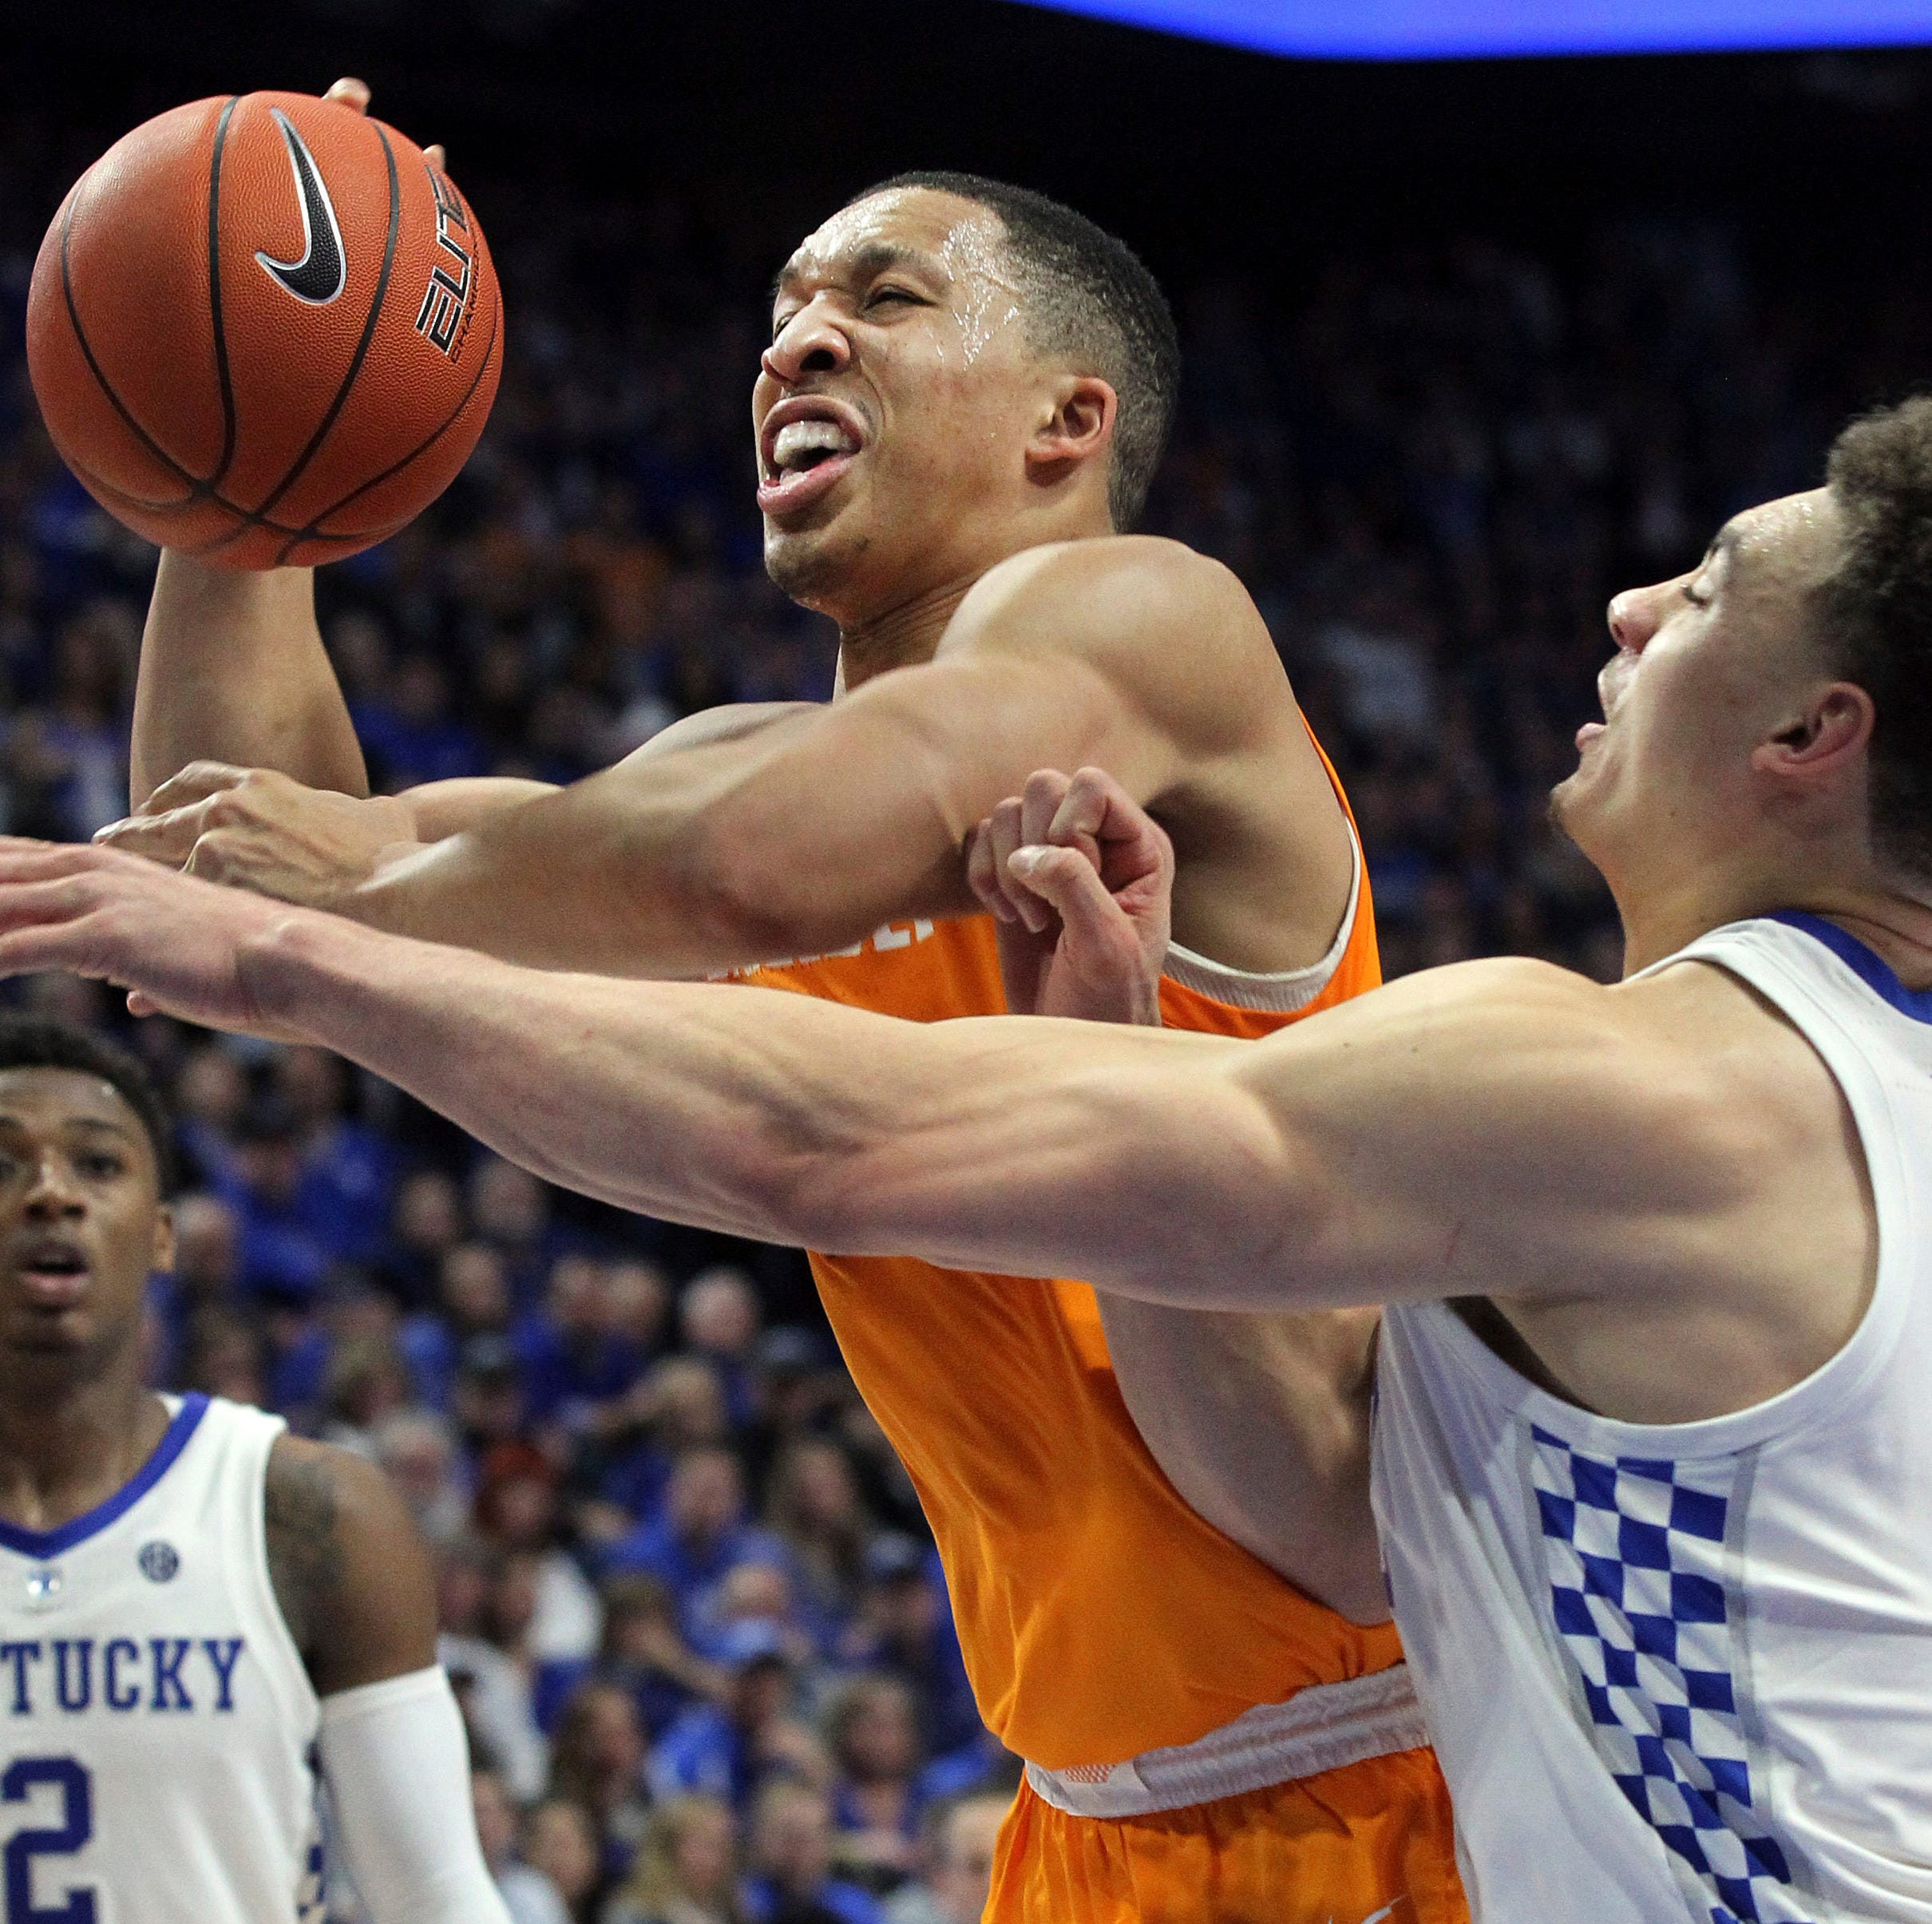 UT Vols coach Rick Barnes on Tennessee's play vs. Kentucky: 'I don't know who I'm looking at'